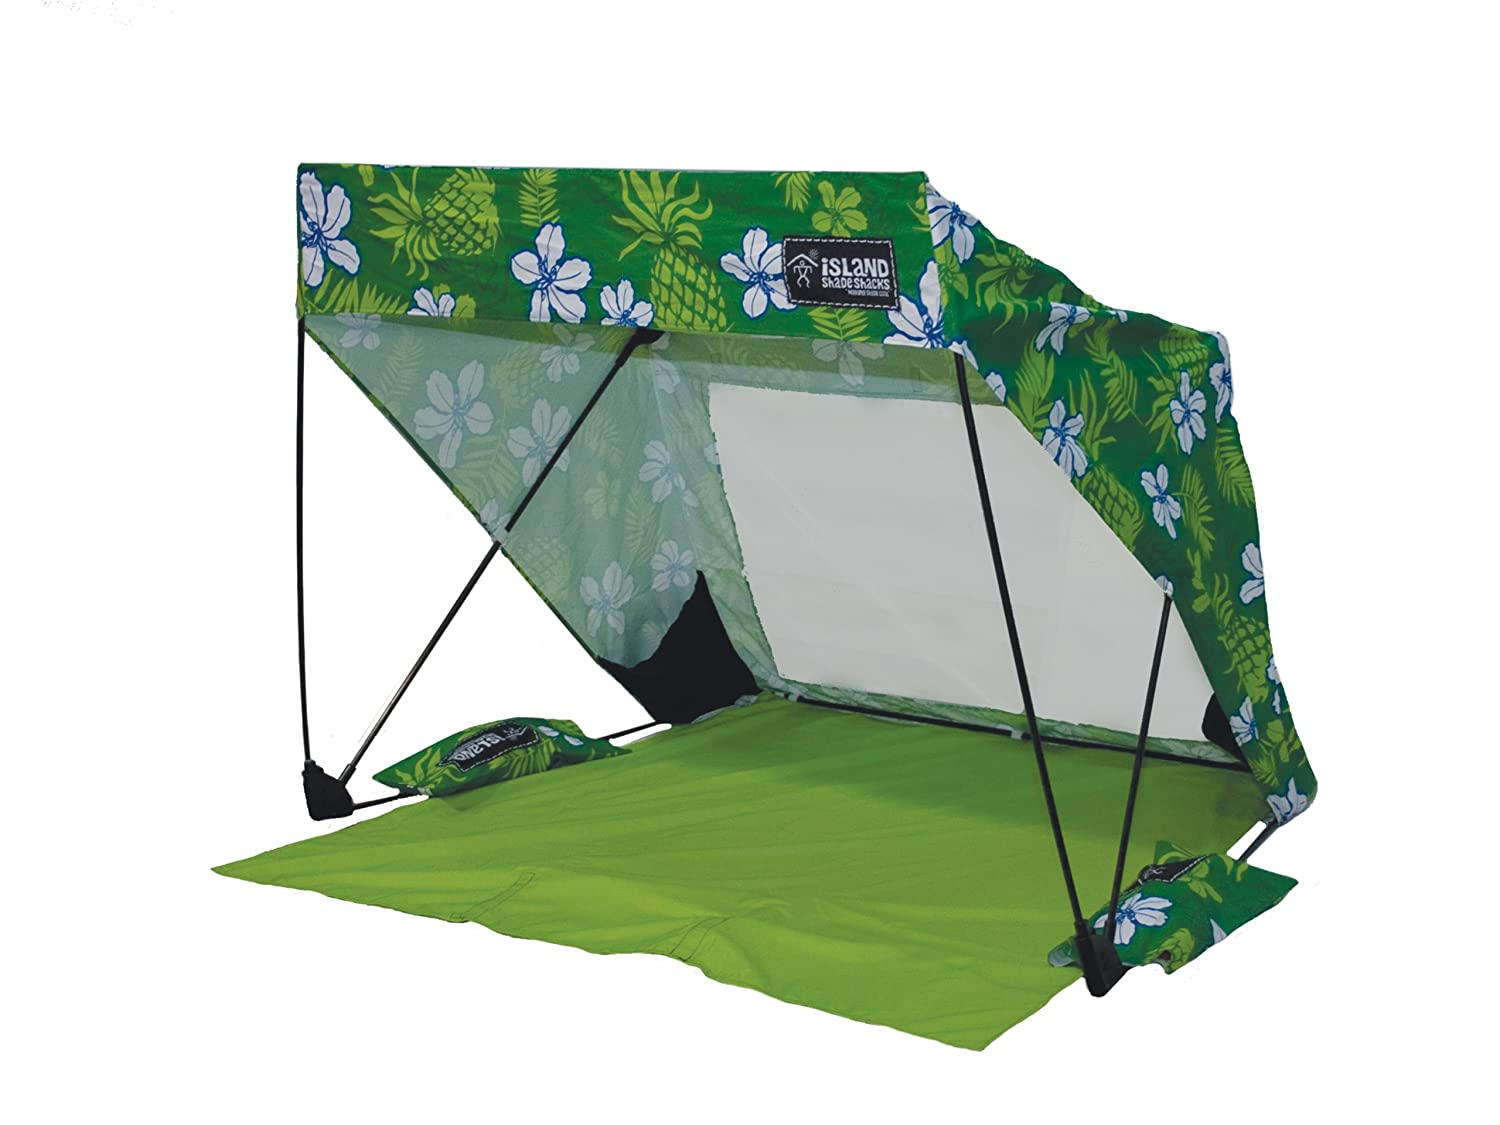 Amazon.com  Kelsyus Tropical Island Shade Shack  C&ing And Hiking Equipment  Sports u0026 Outdoors  sc 1 st  Amazon.com & Amazon.com : Kelsyus Tropical Island Shade Shack : Camping And ...